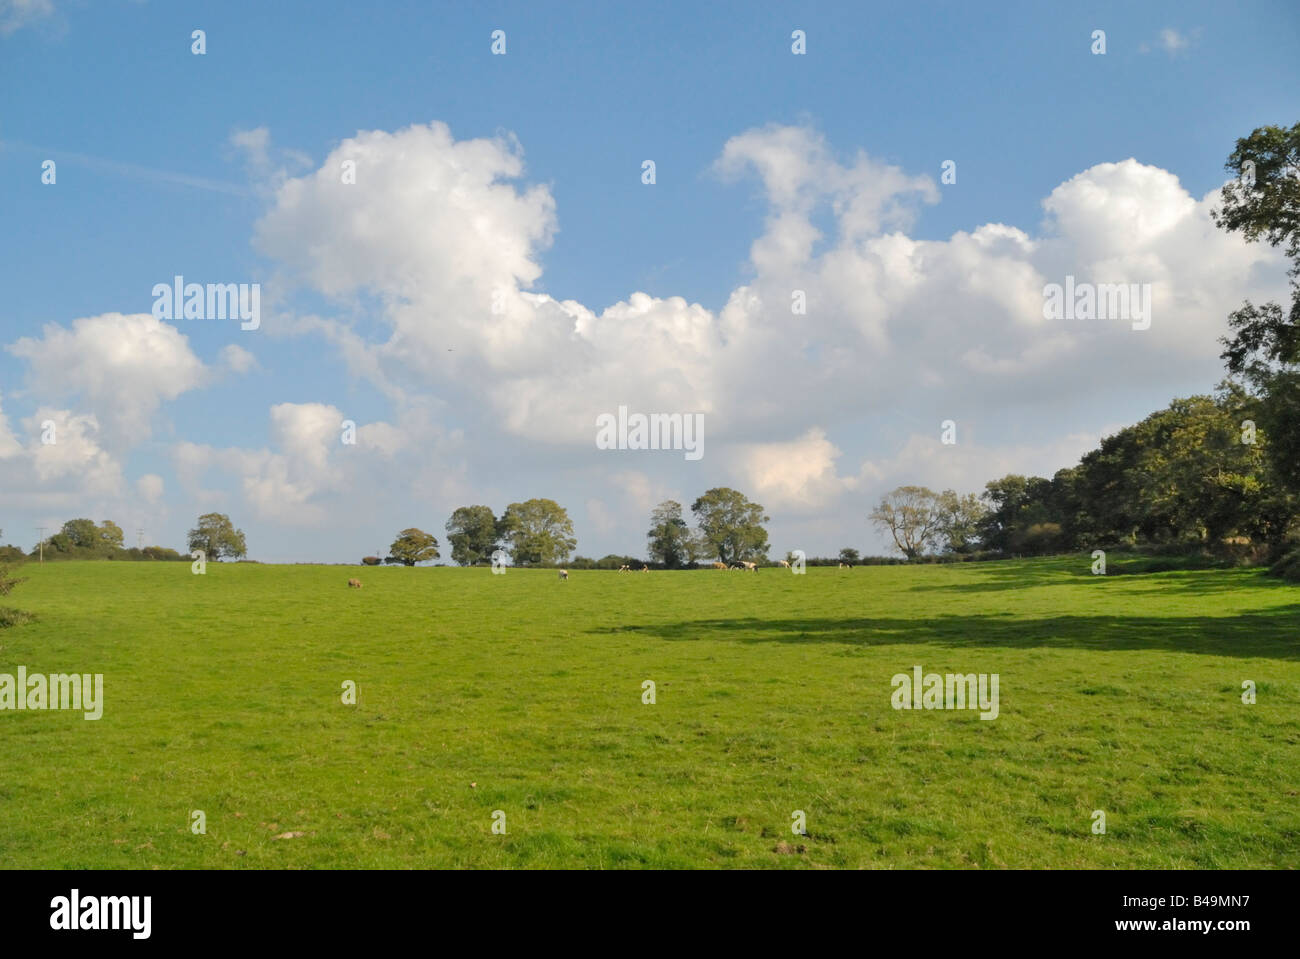 Pastoral scene with cos and clouds, Llangoed, Anglesey, Wales - Stock Image